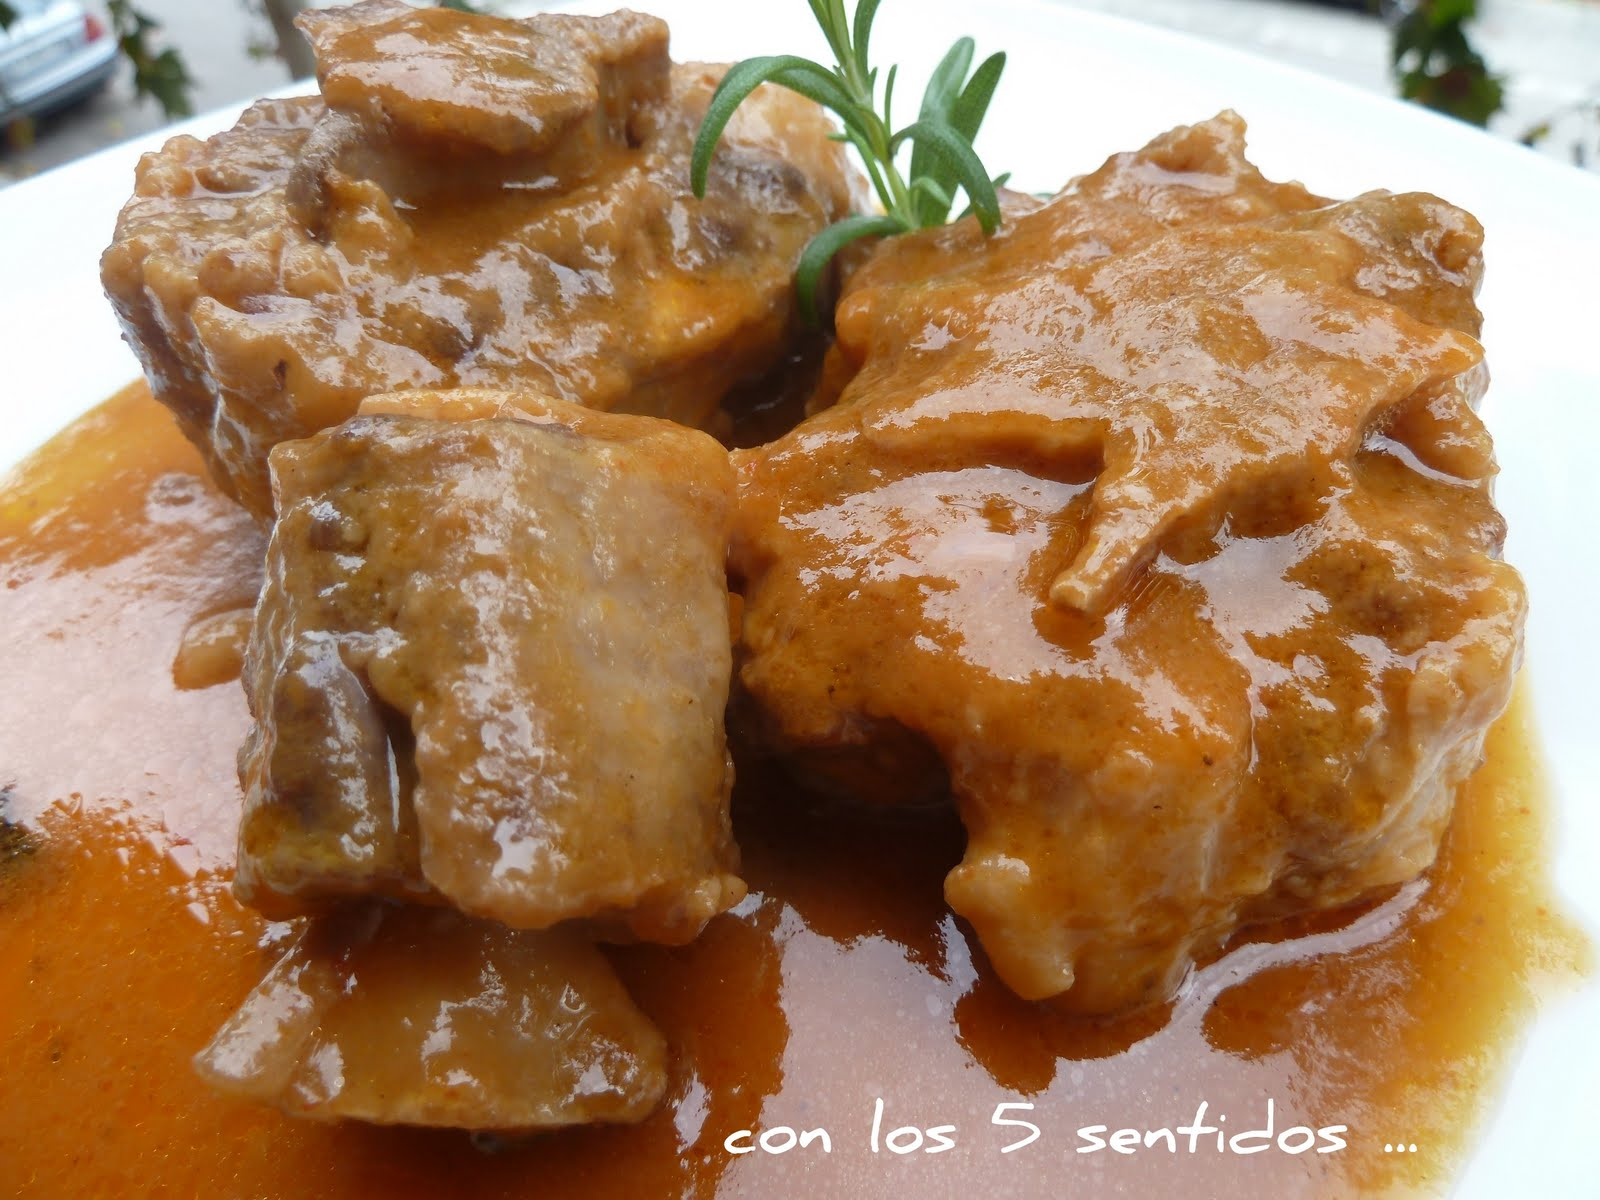 Crismascocina rabo de ternera share the knownledge - Cocinar rabo de ternera ...